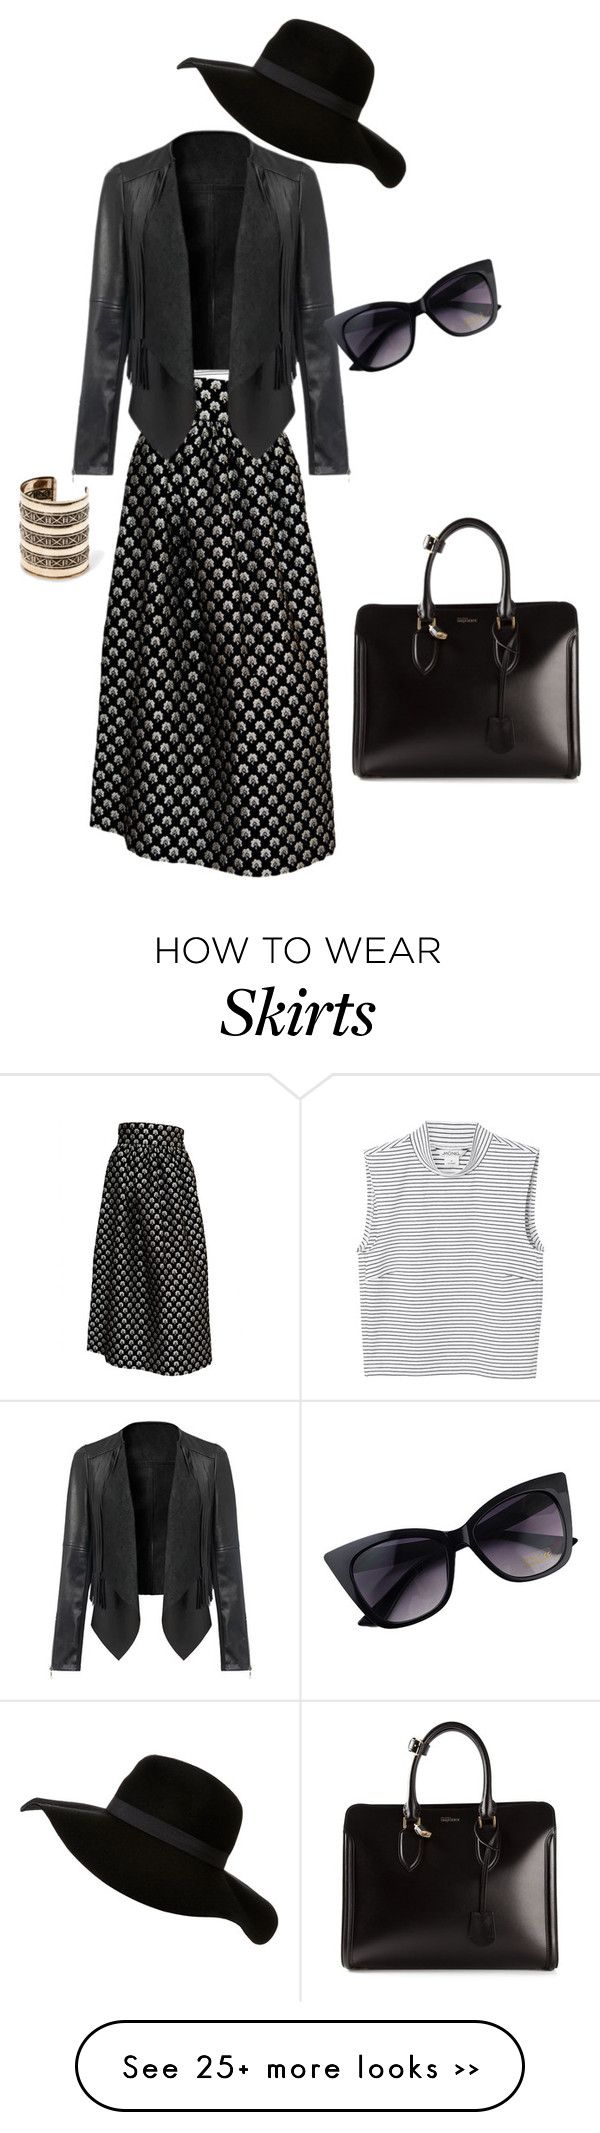 """""""That Skirt... """" by carly-whittaker on Polyvore"""